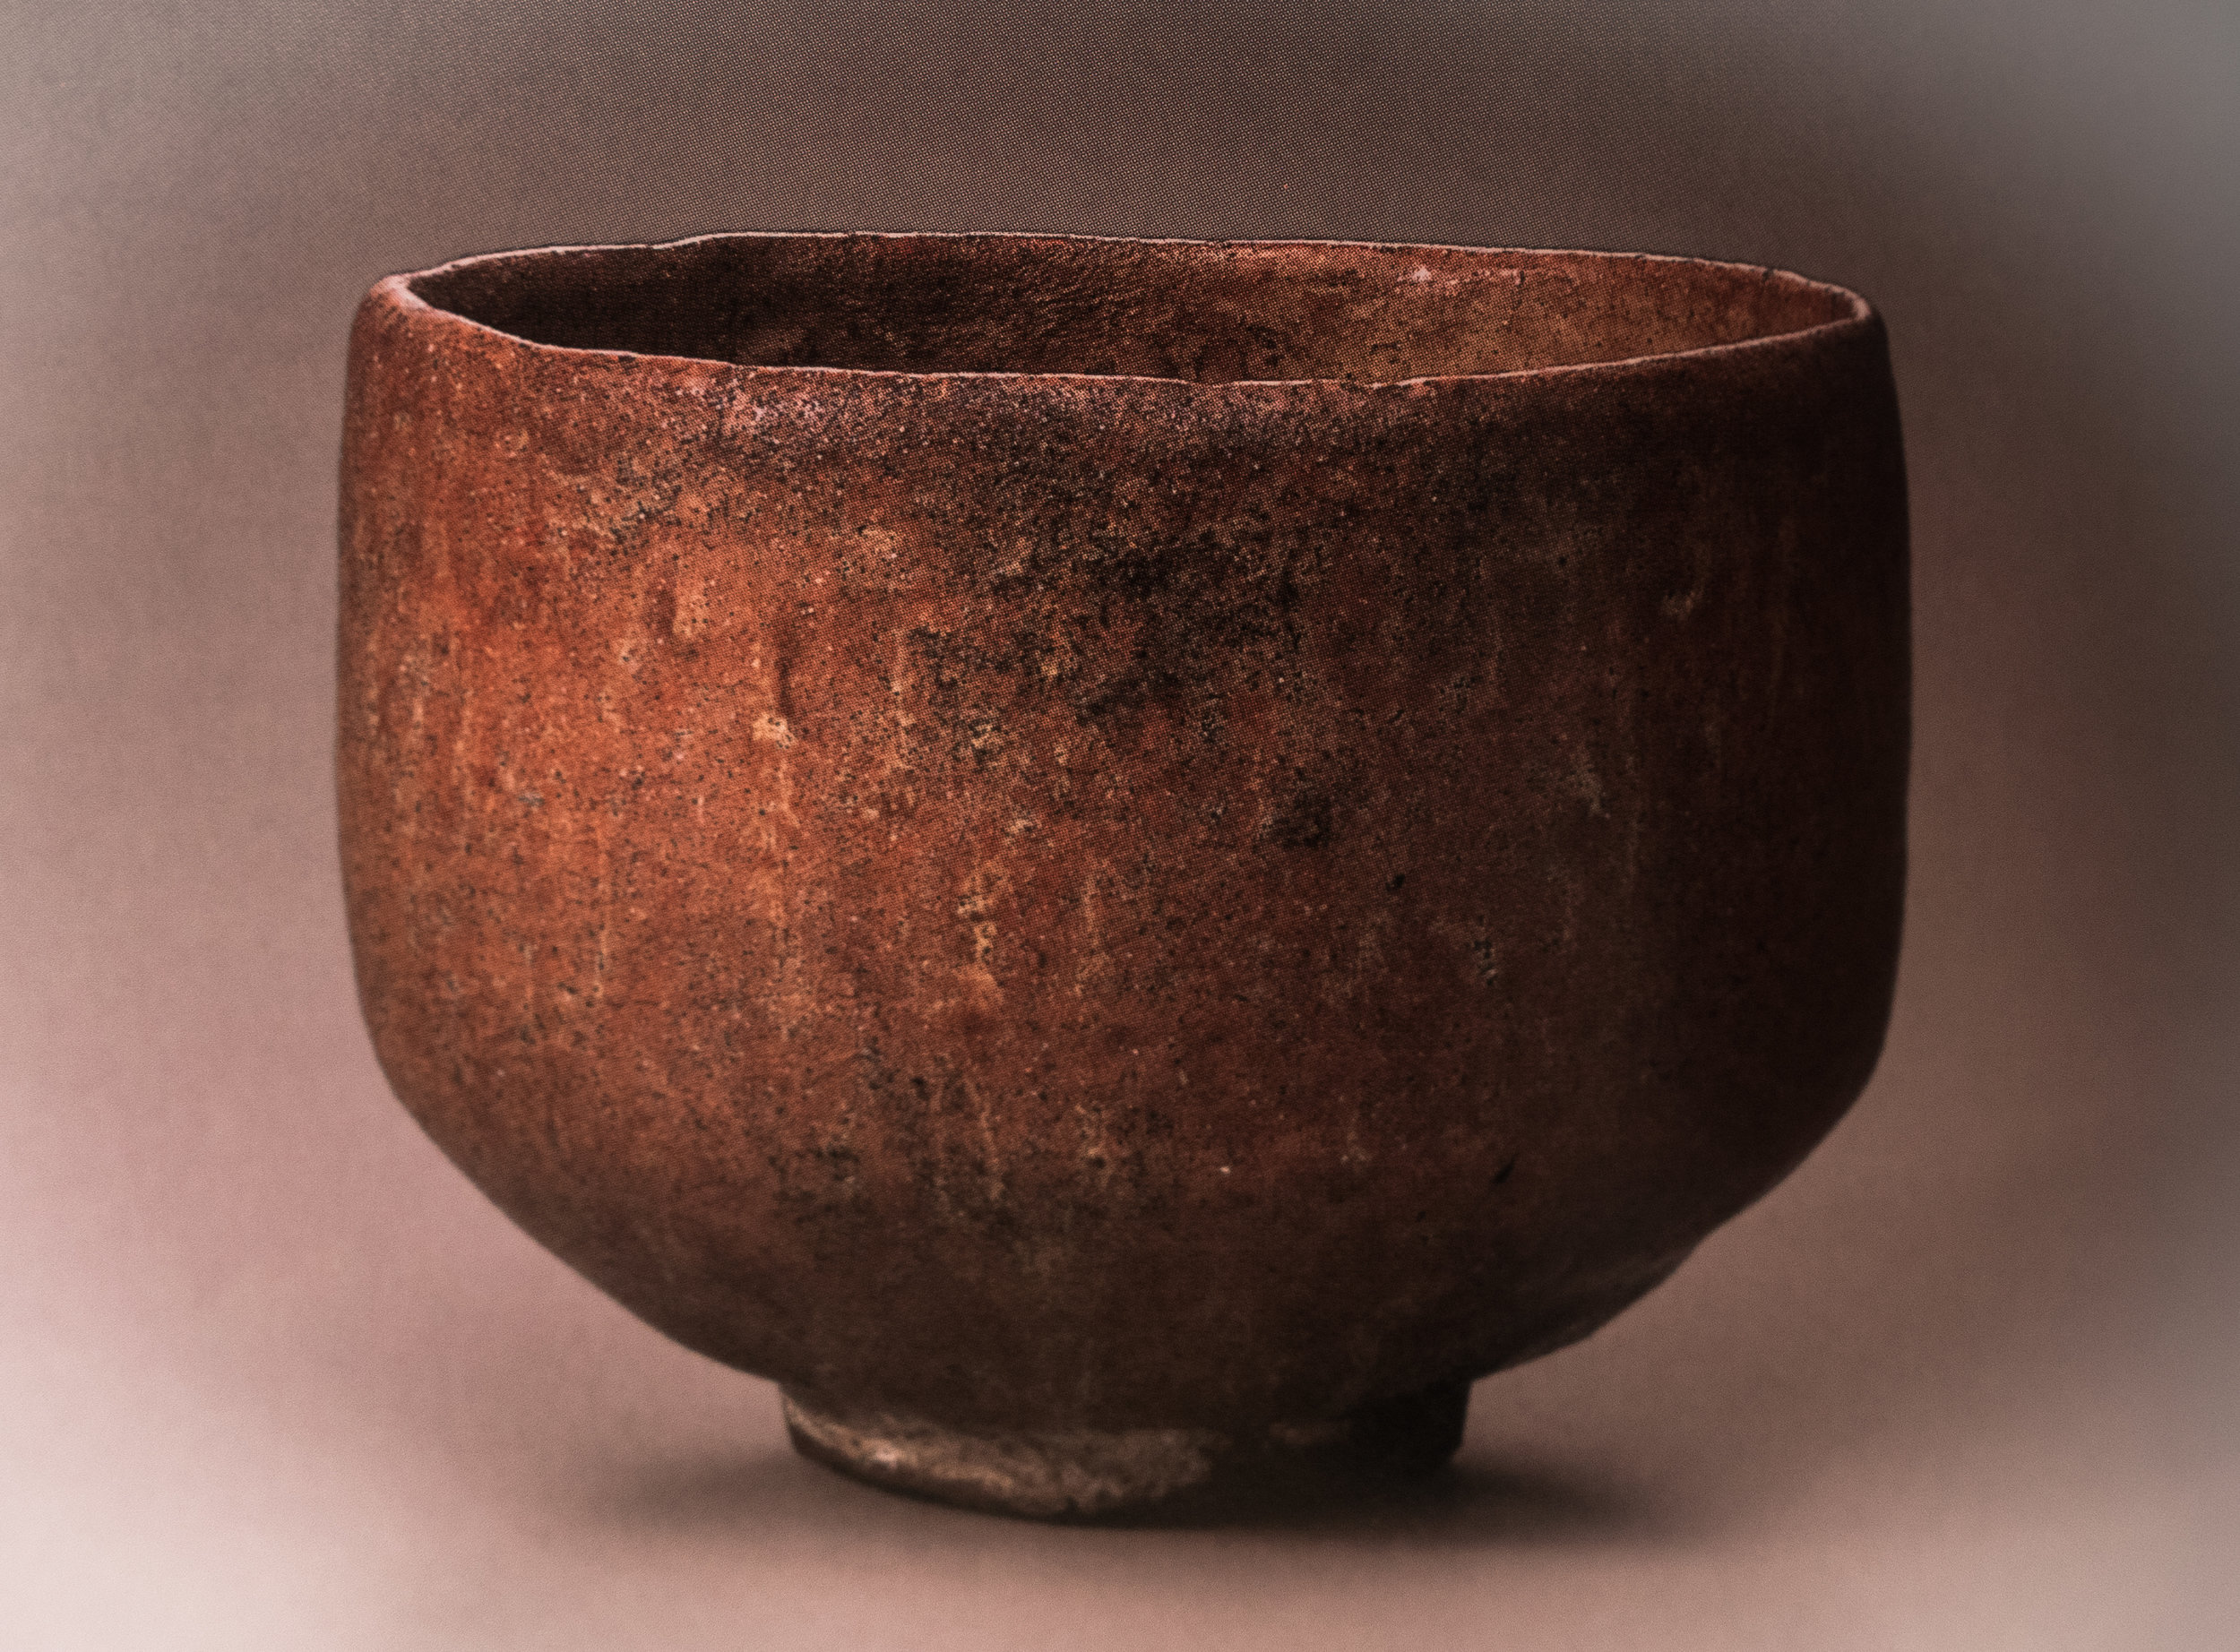 RED RAKU BOWL NAMED MUICHIMOTSU (NOTHING) or MUICHIBUTSU, RAKU CHOJIRO (?-1589). Collection of Sagawa Museum of Art (image from the exhibition catalogue)